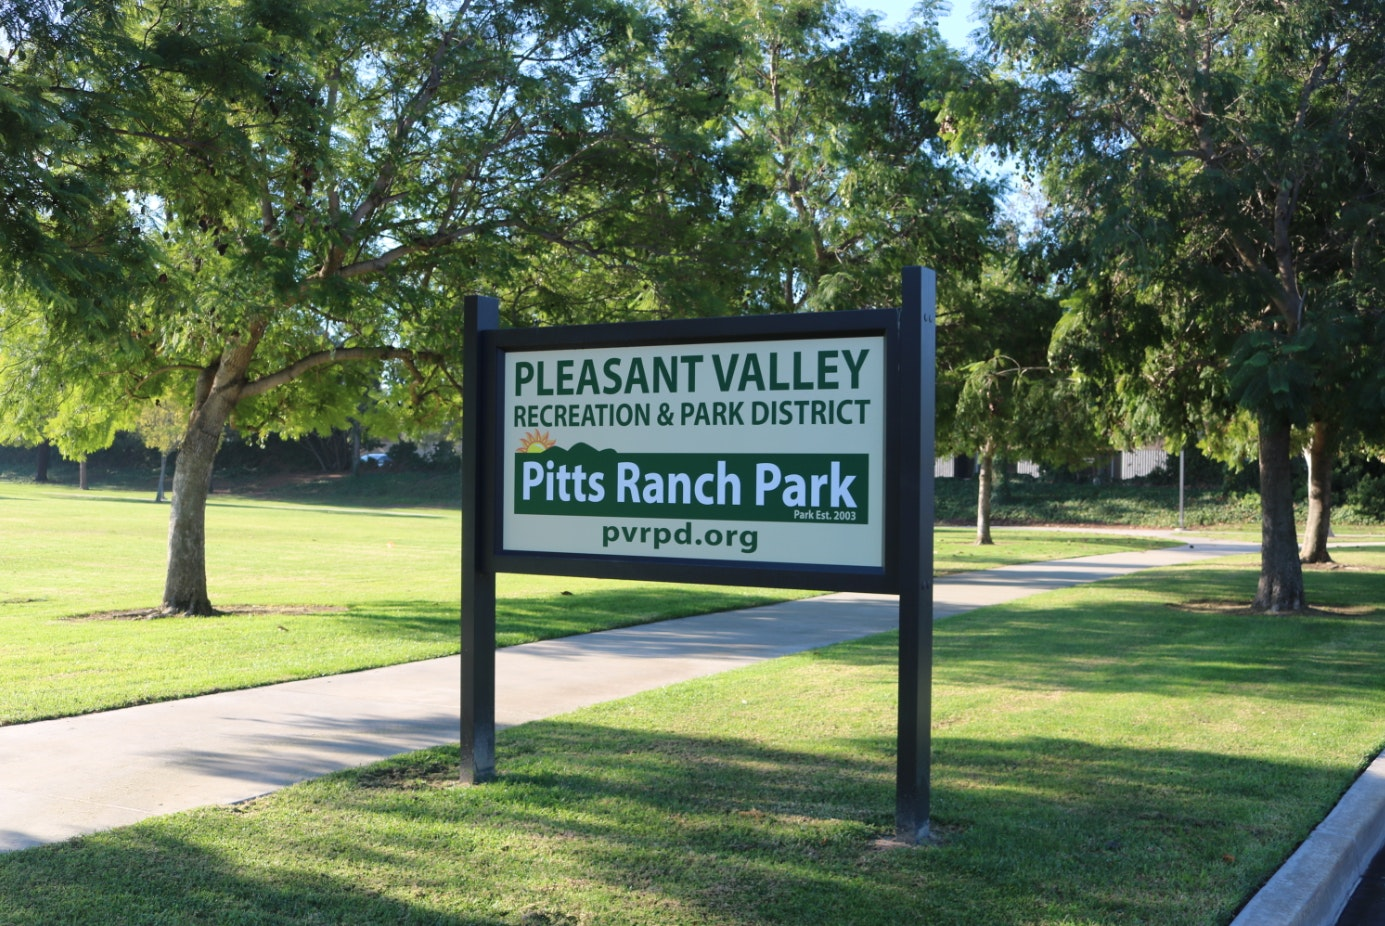 Pitts Ranch Park